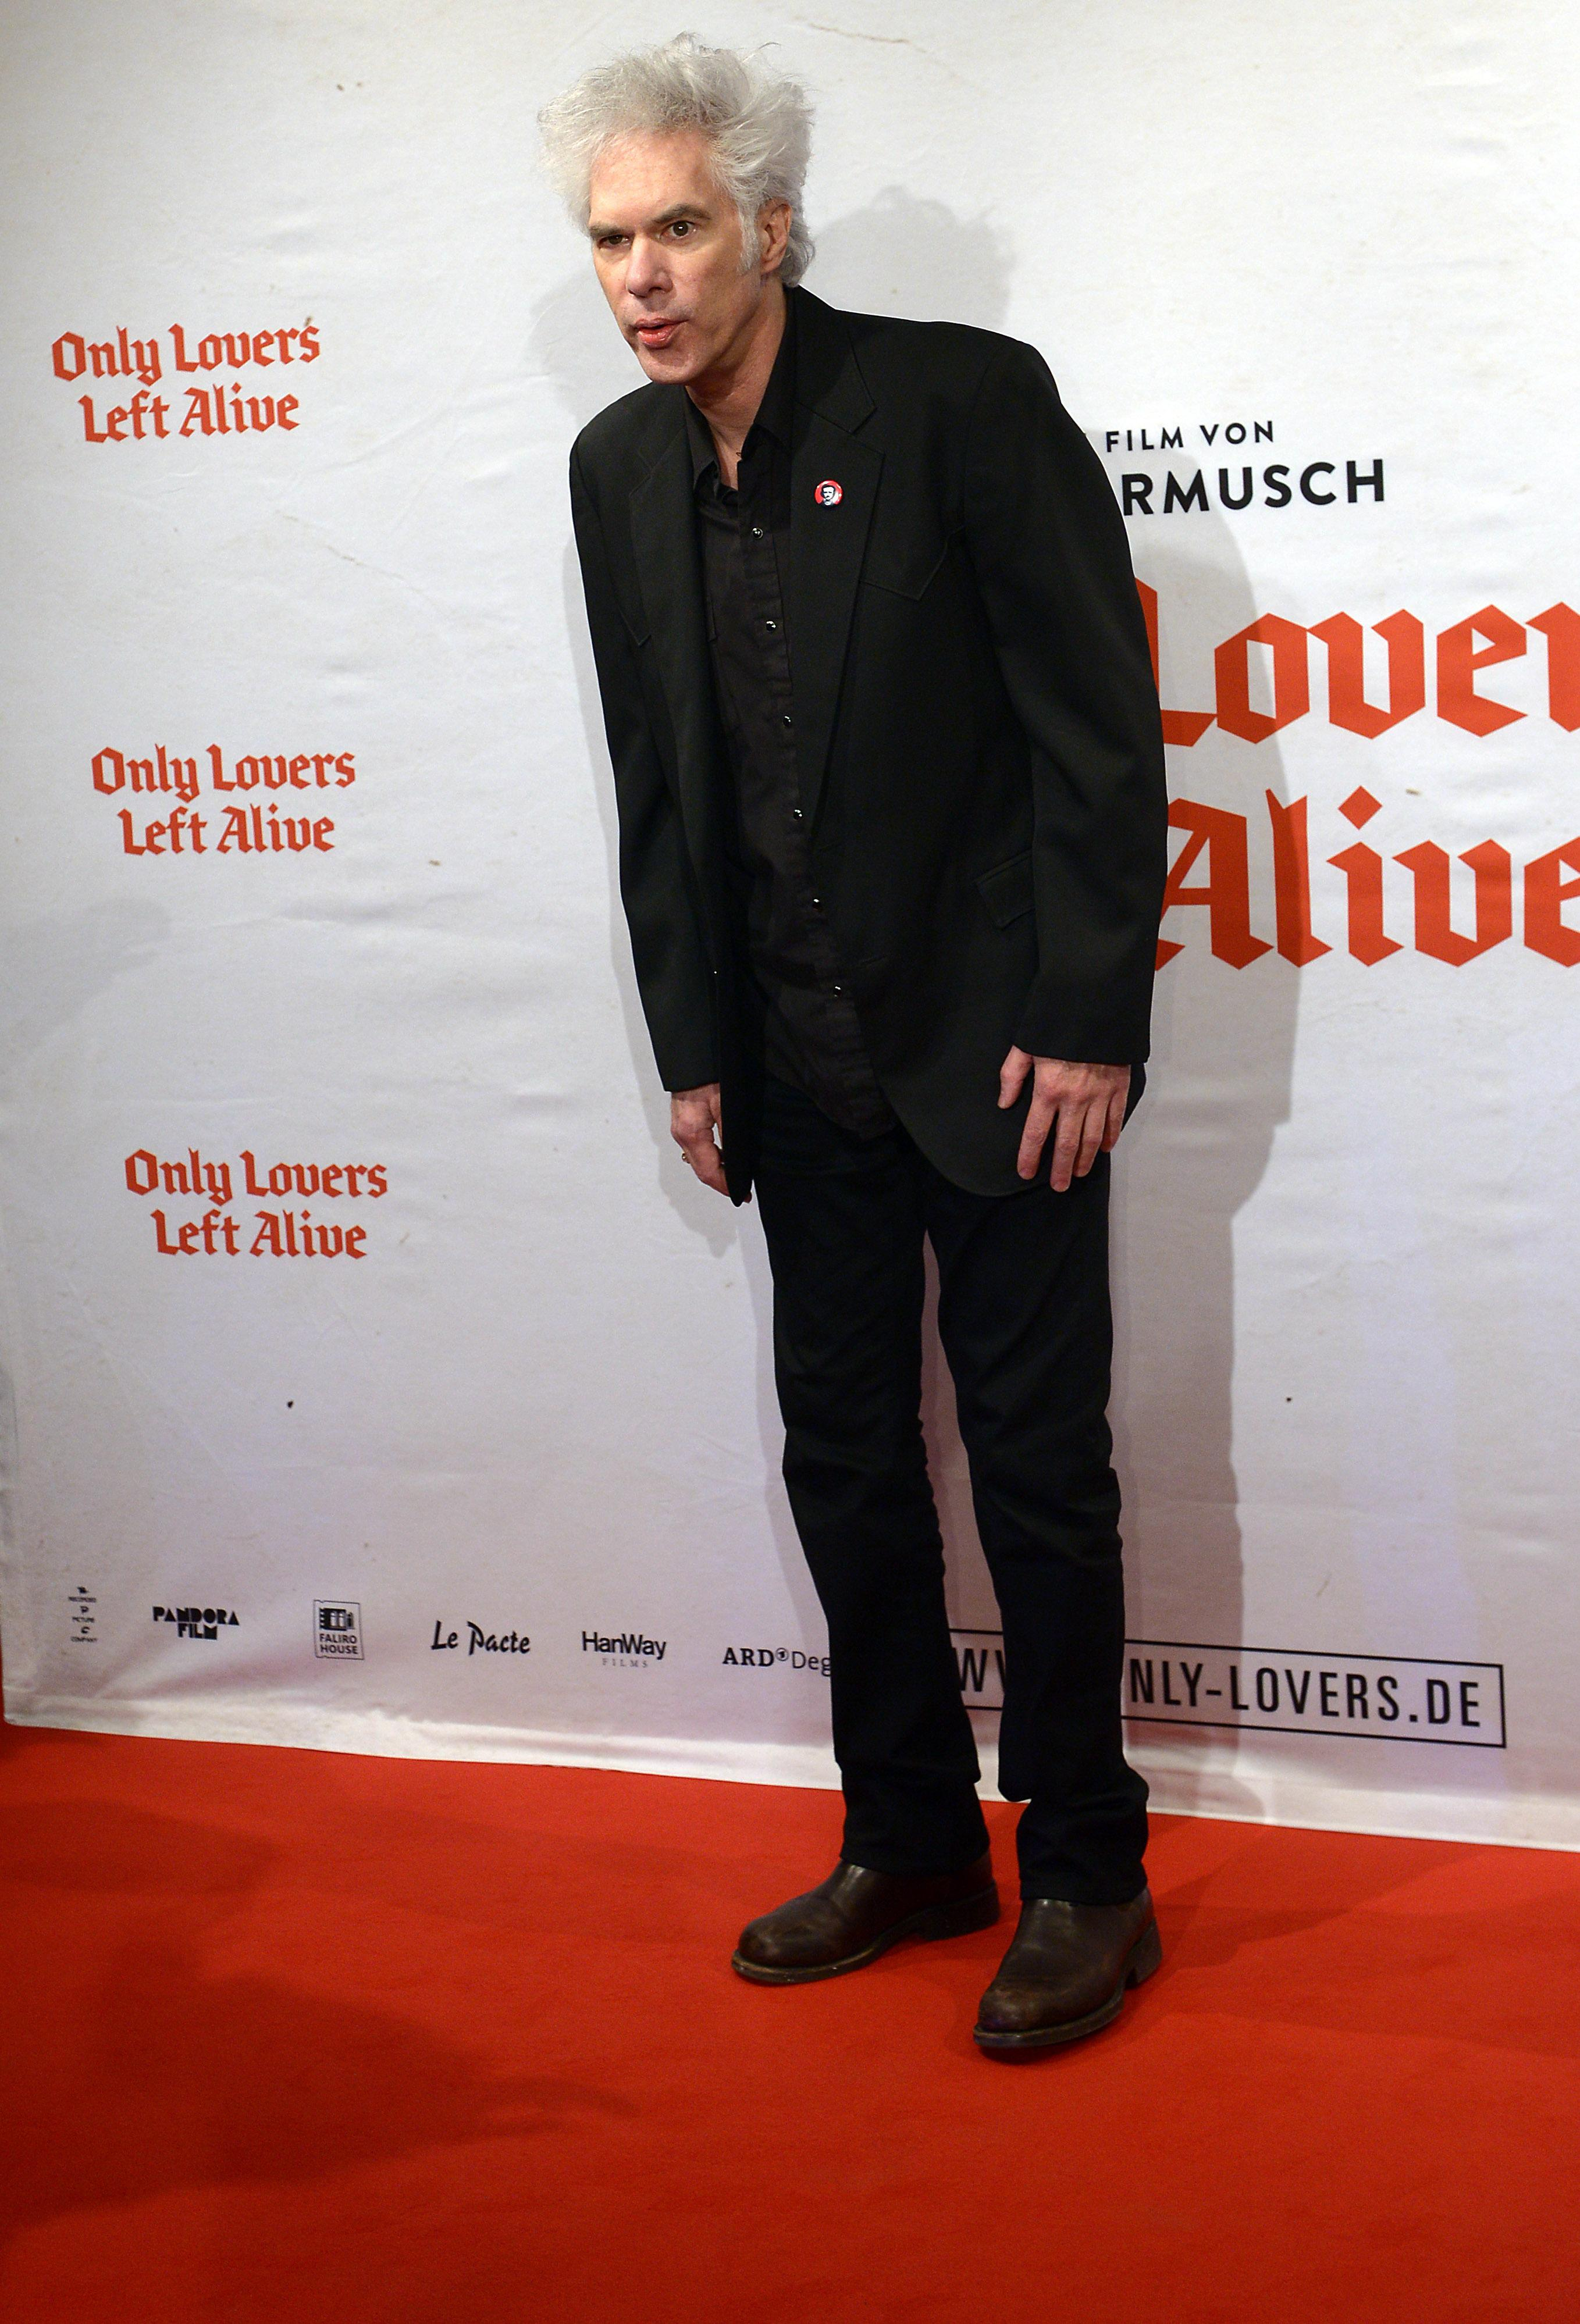 Cologne, Germany. 10th Dec, 2013. Filmmaker Jim Jarmusch Arrives To The Premiere Of The Movie